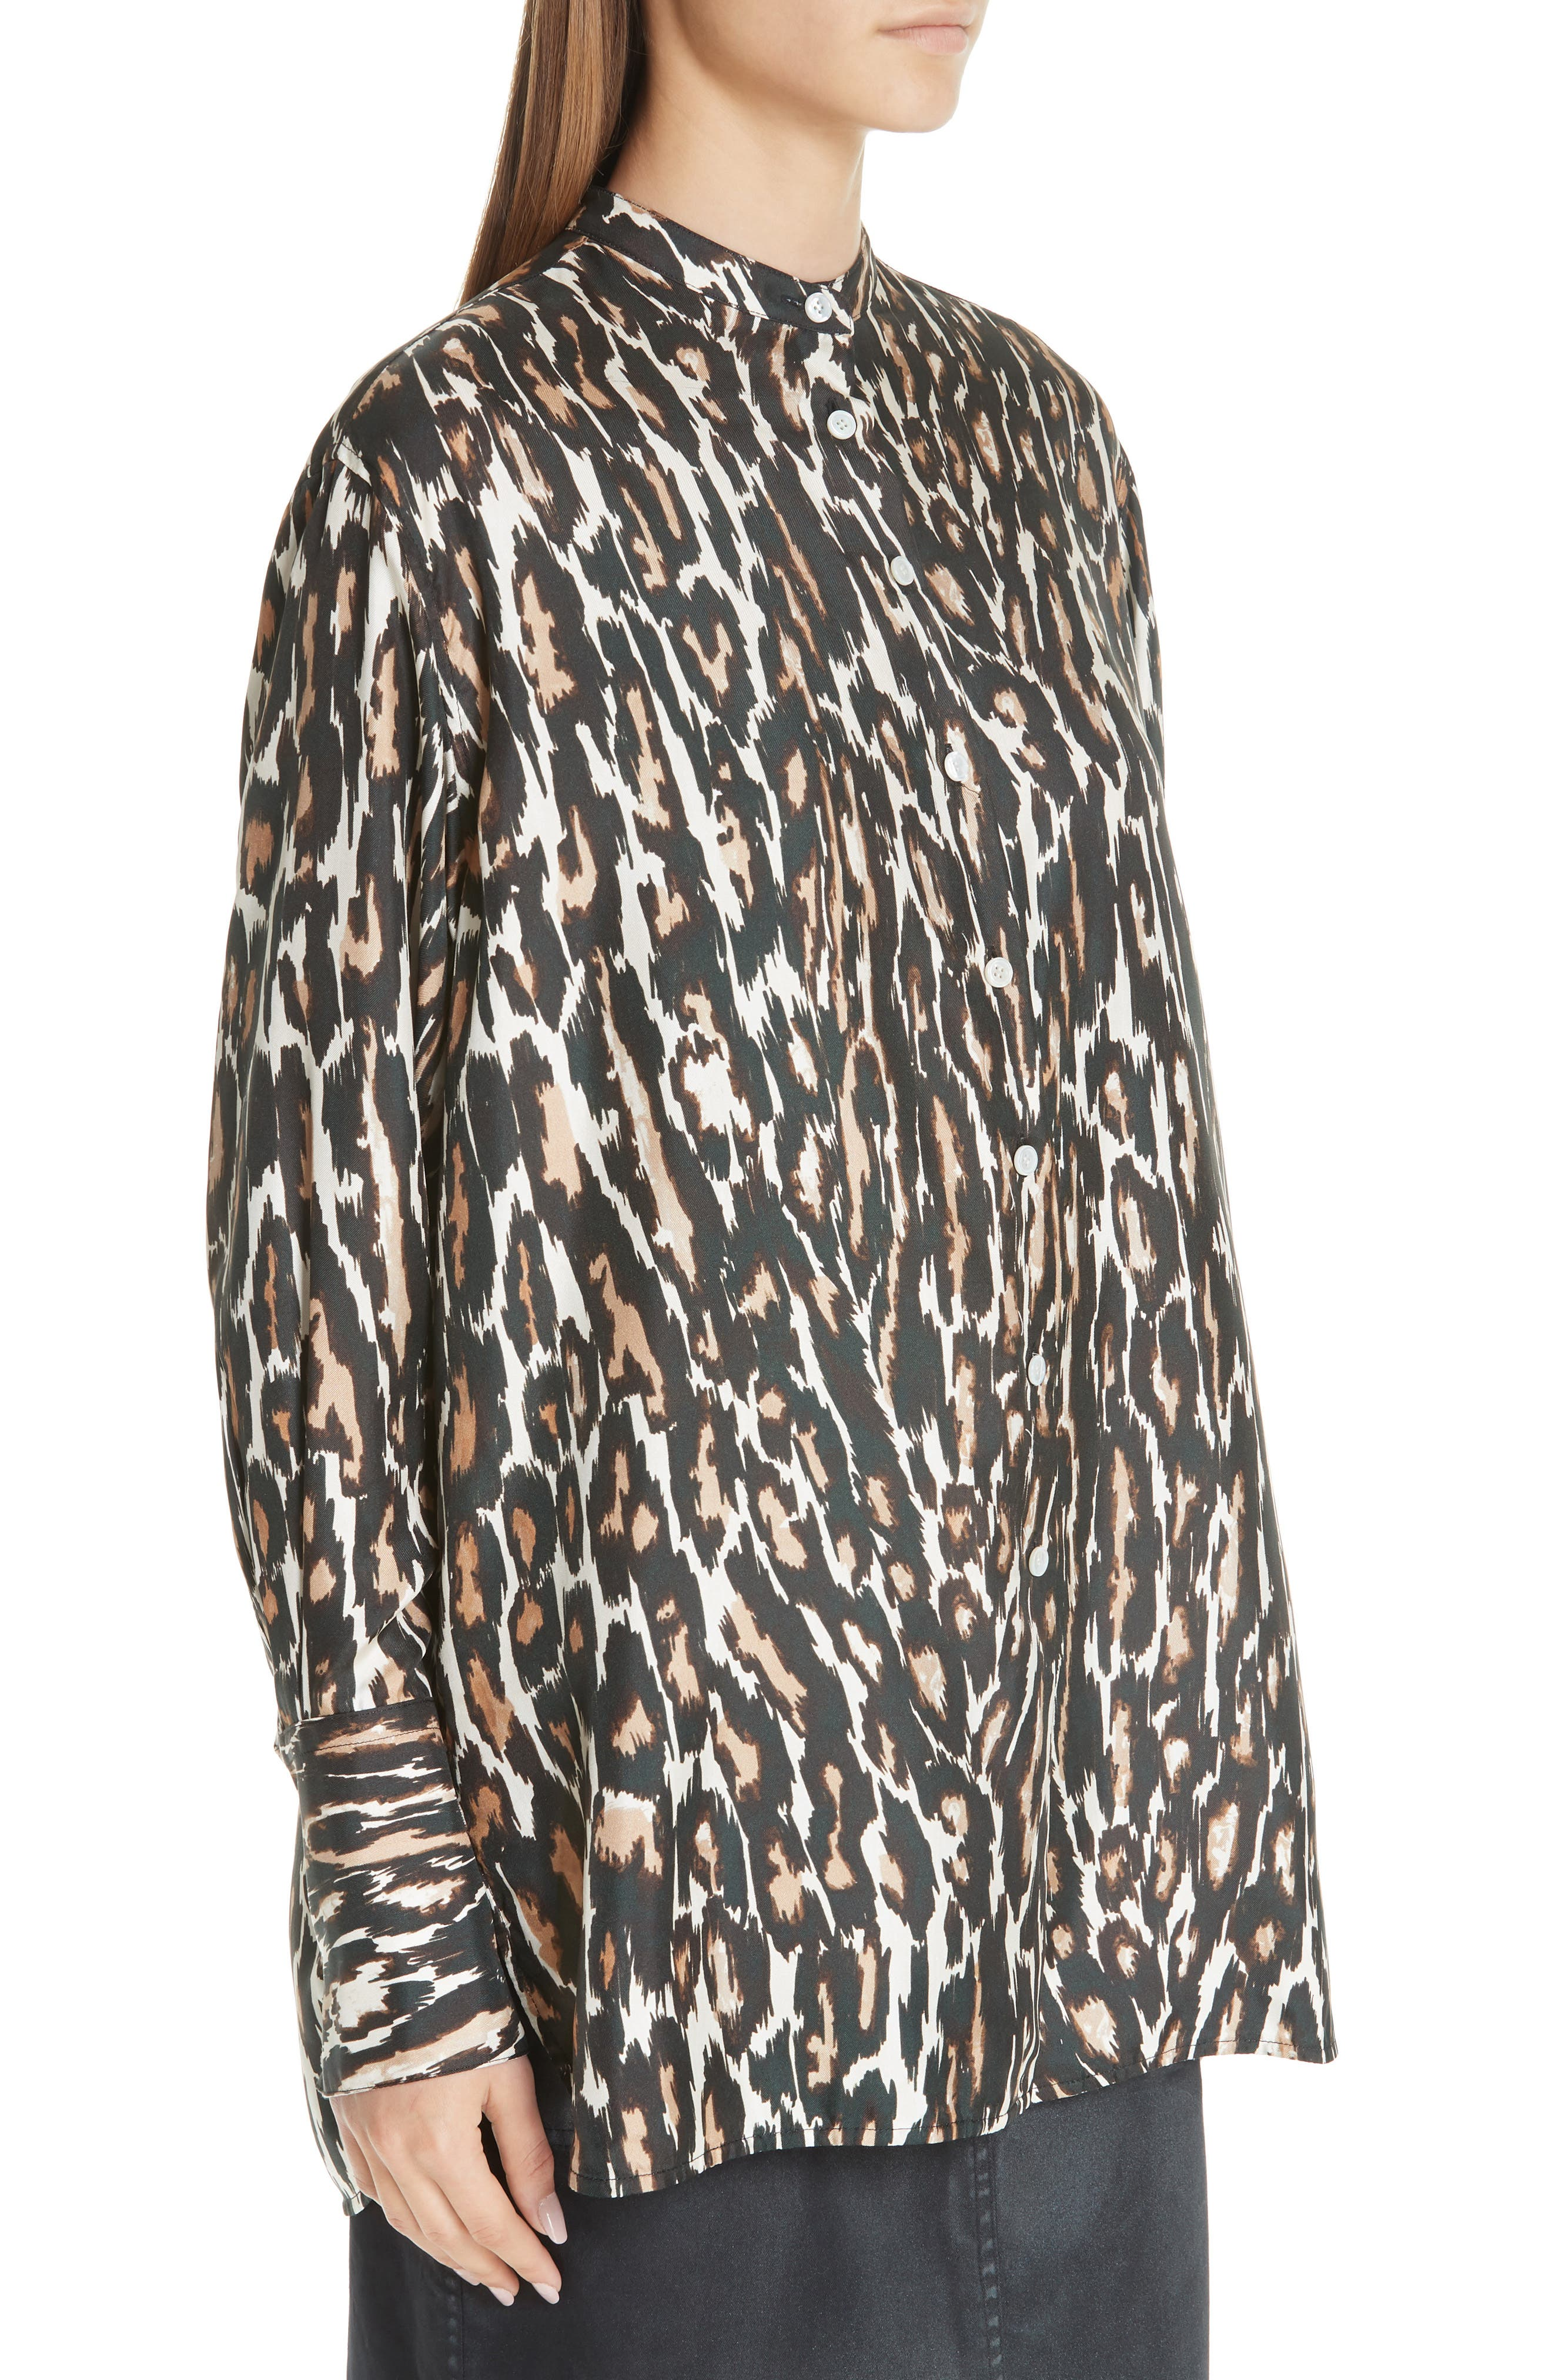 Leopard Print Silk Twill Blouse,                             Alternate thumbnail 4, color,                             IVORY BROWN BLACK BEIGE